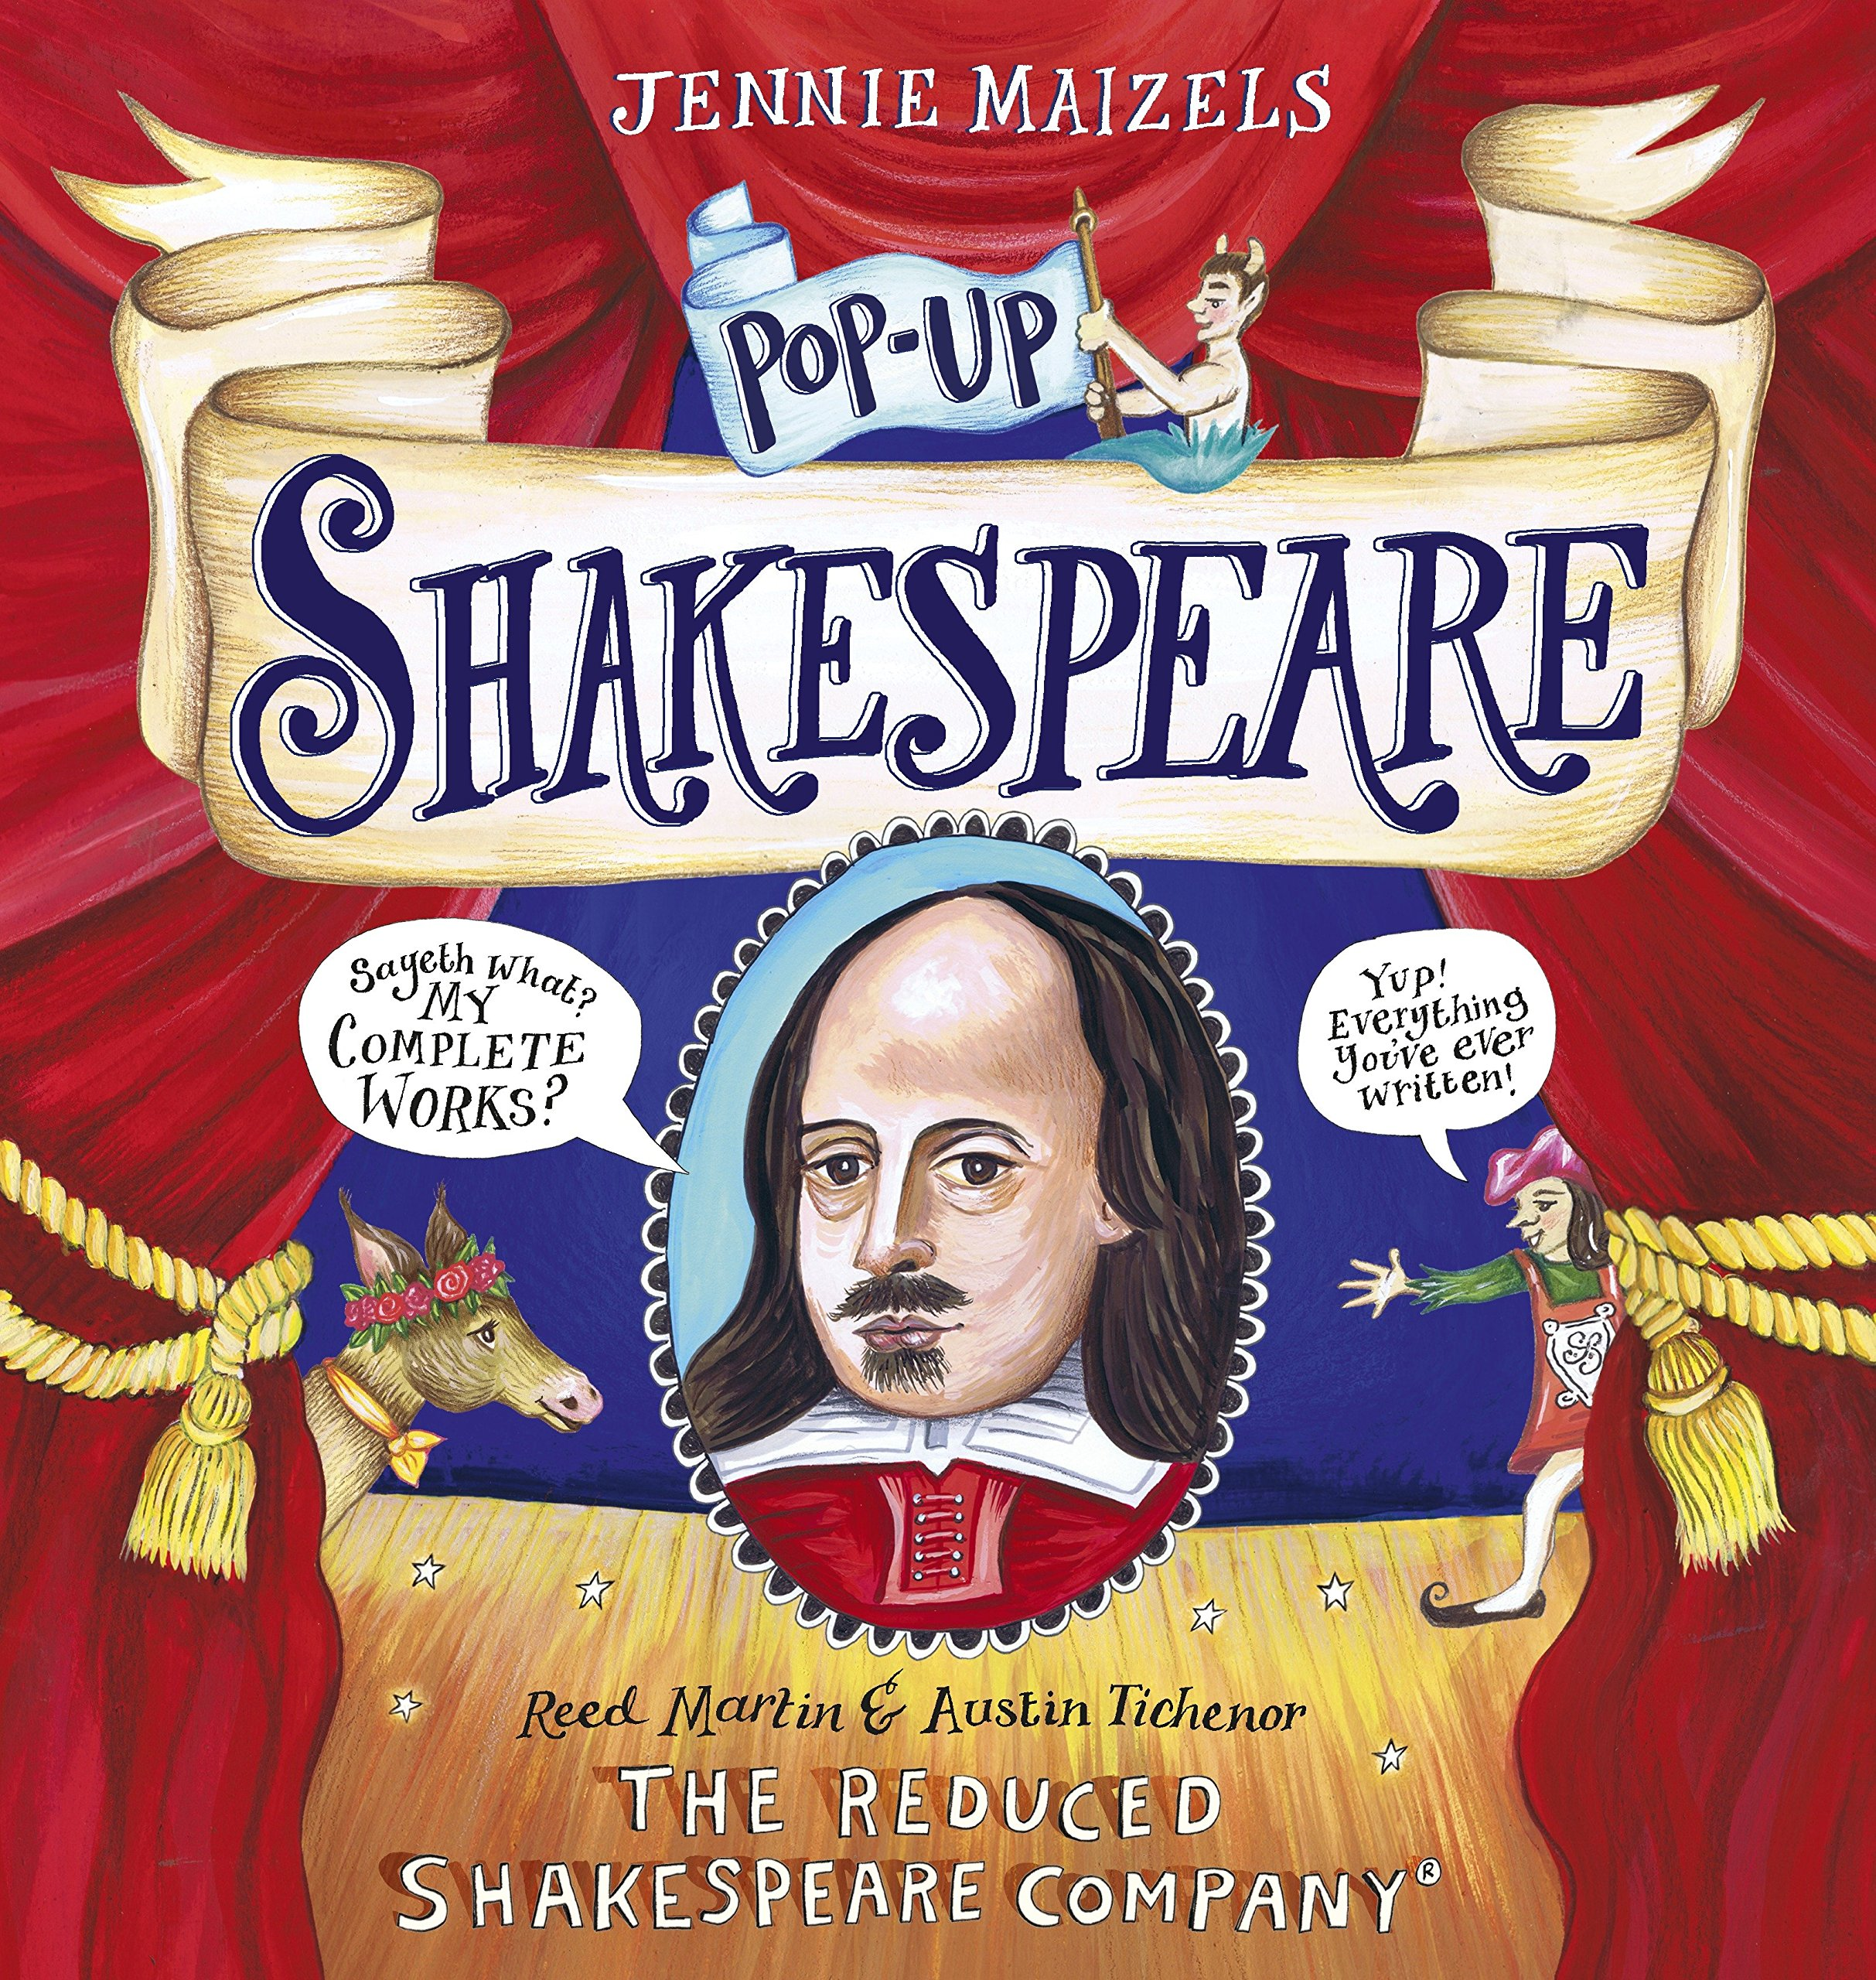 Pop-up Shakespeare: Every Play and Poem in Pop-up 3-D Hardcover – October 3, 2017 The Reduced Shakespeare Co. Austin Tichenor Reed Martin Jennie Maizels